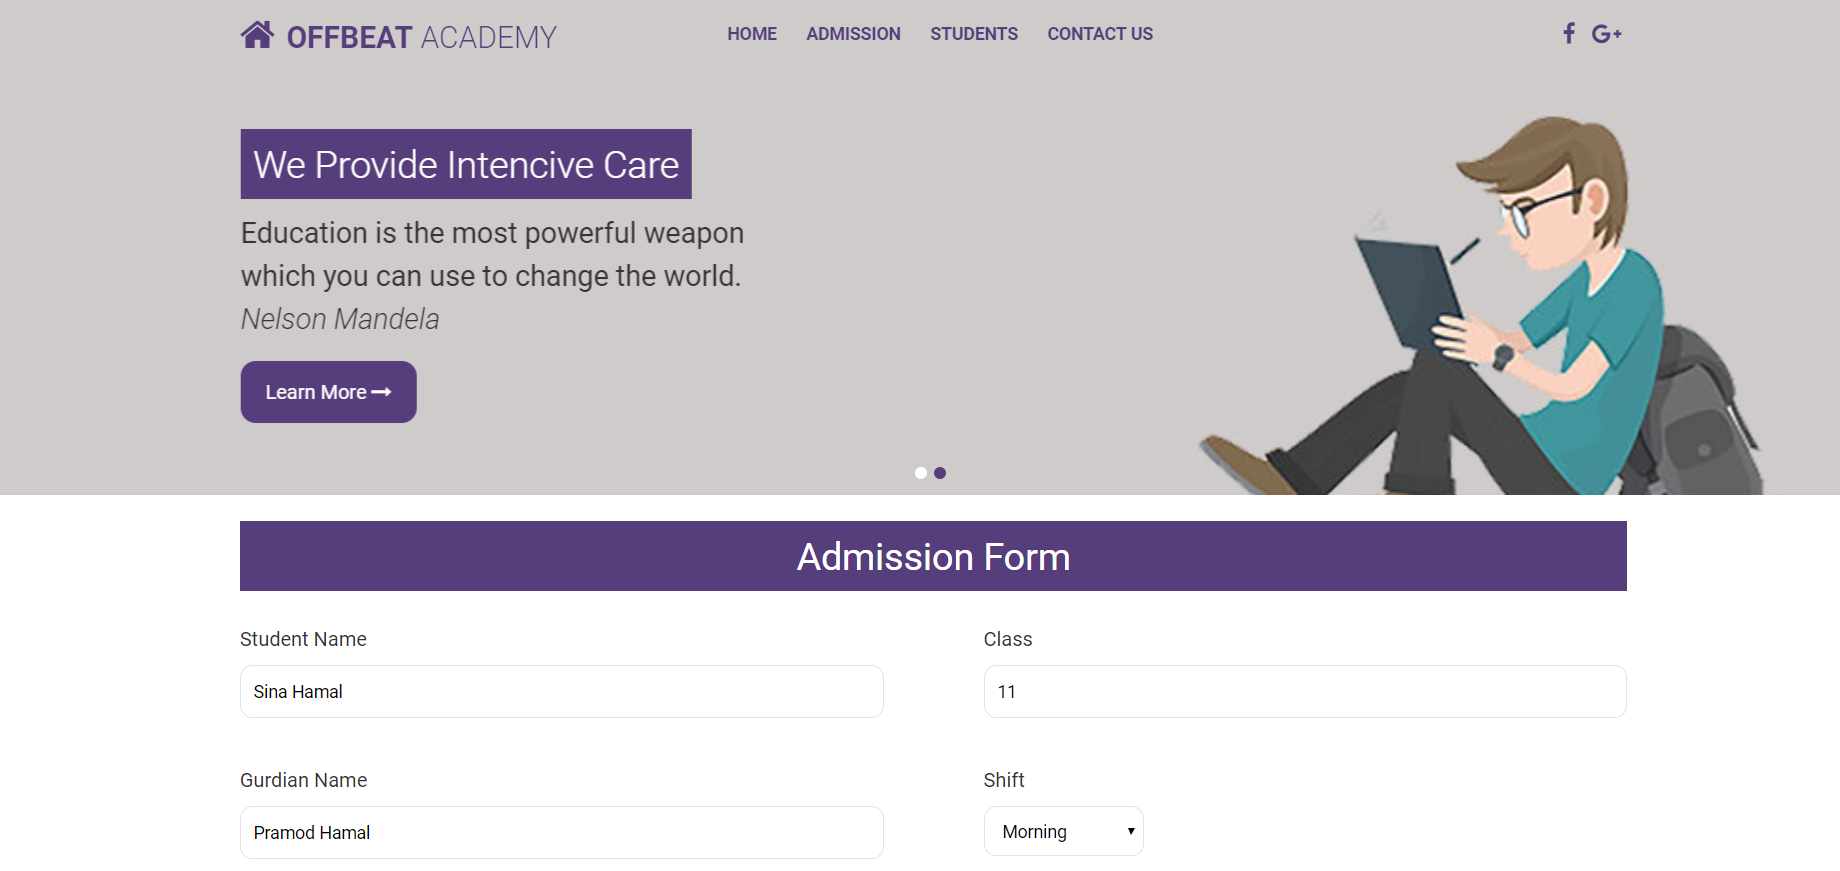 image of admission system